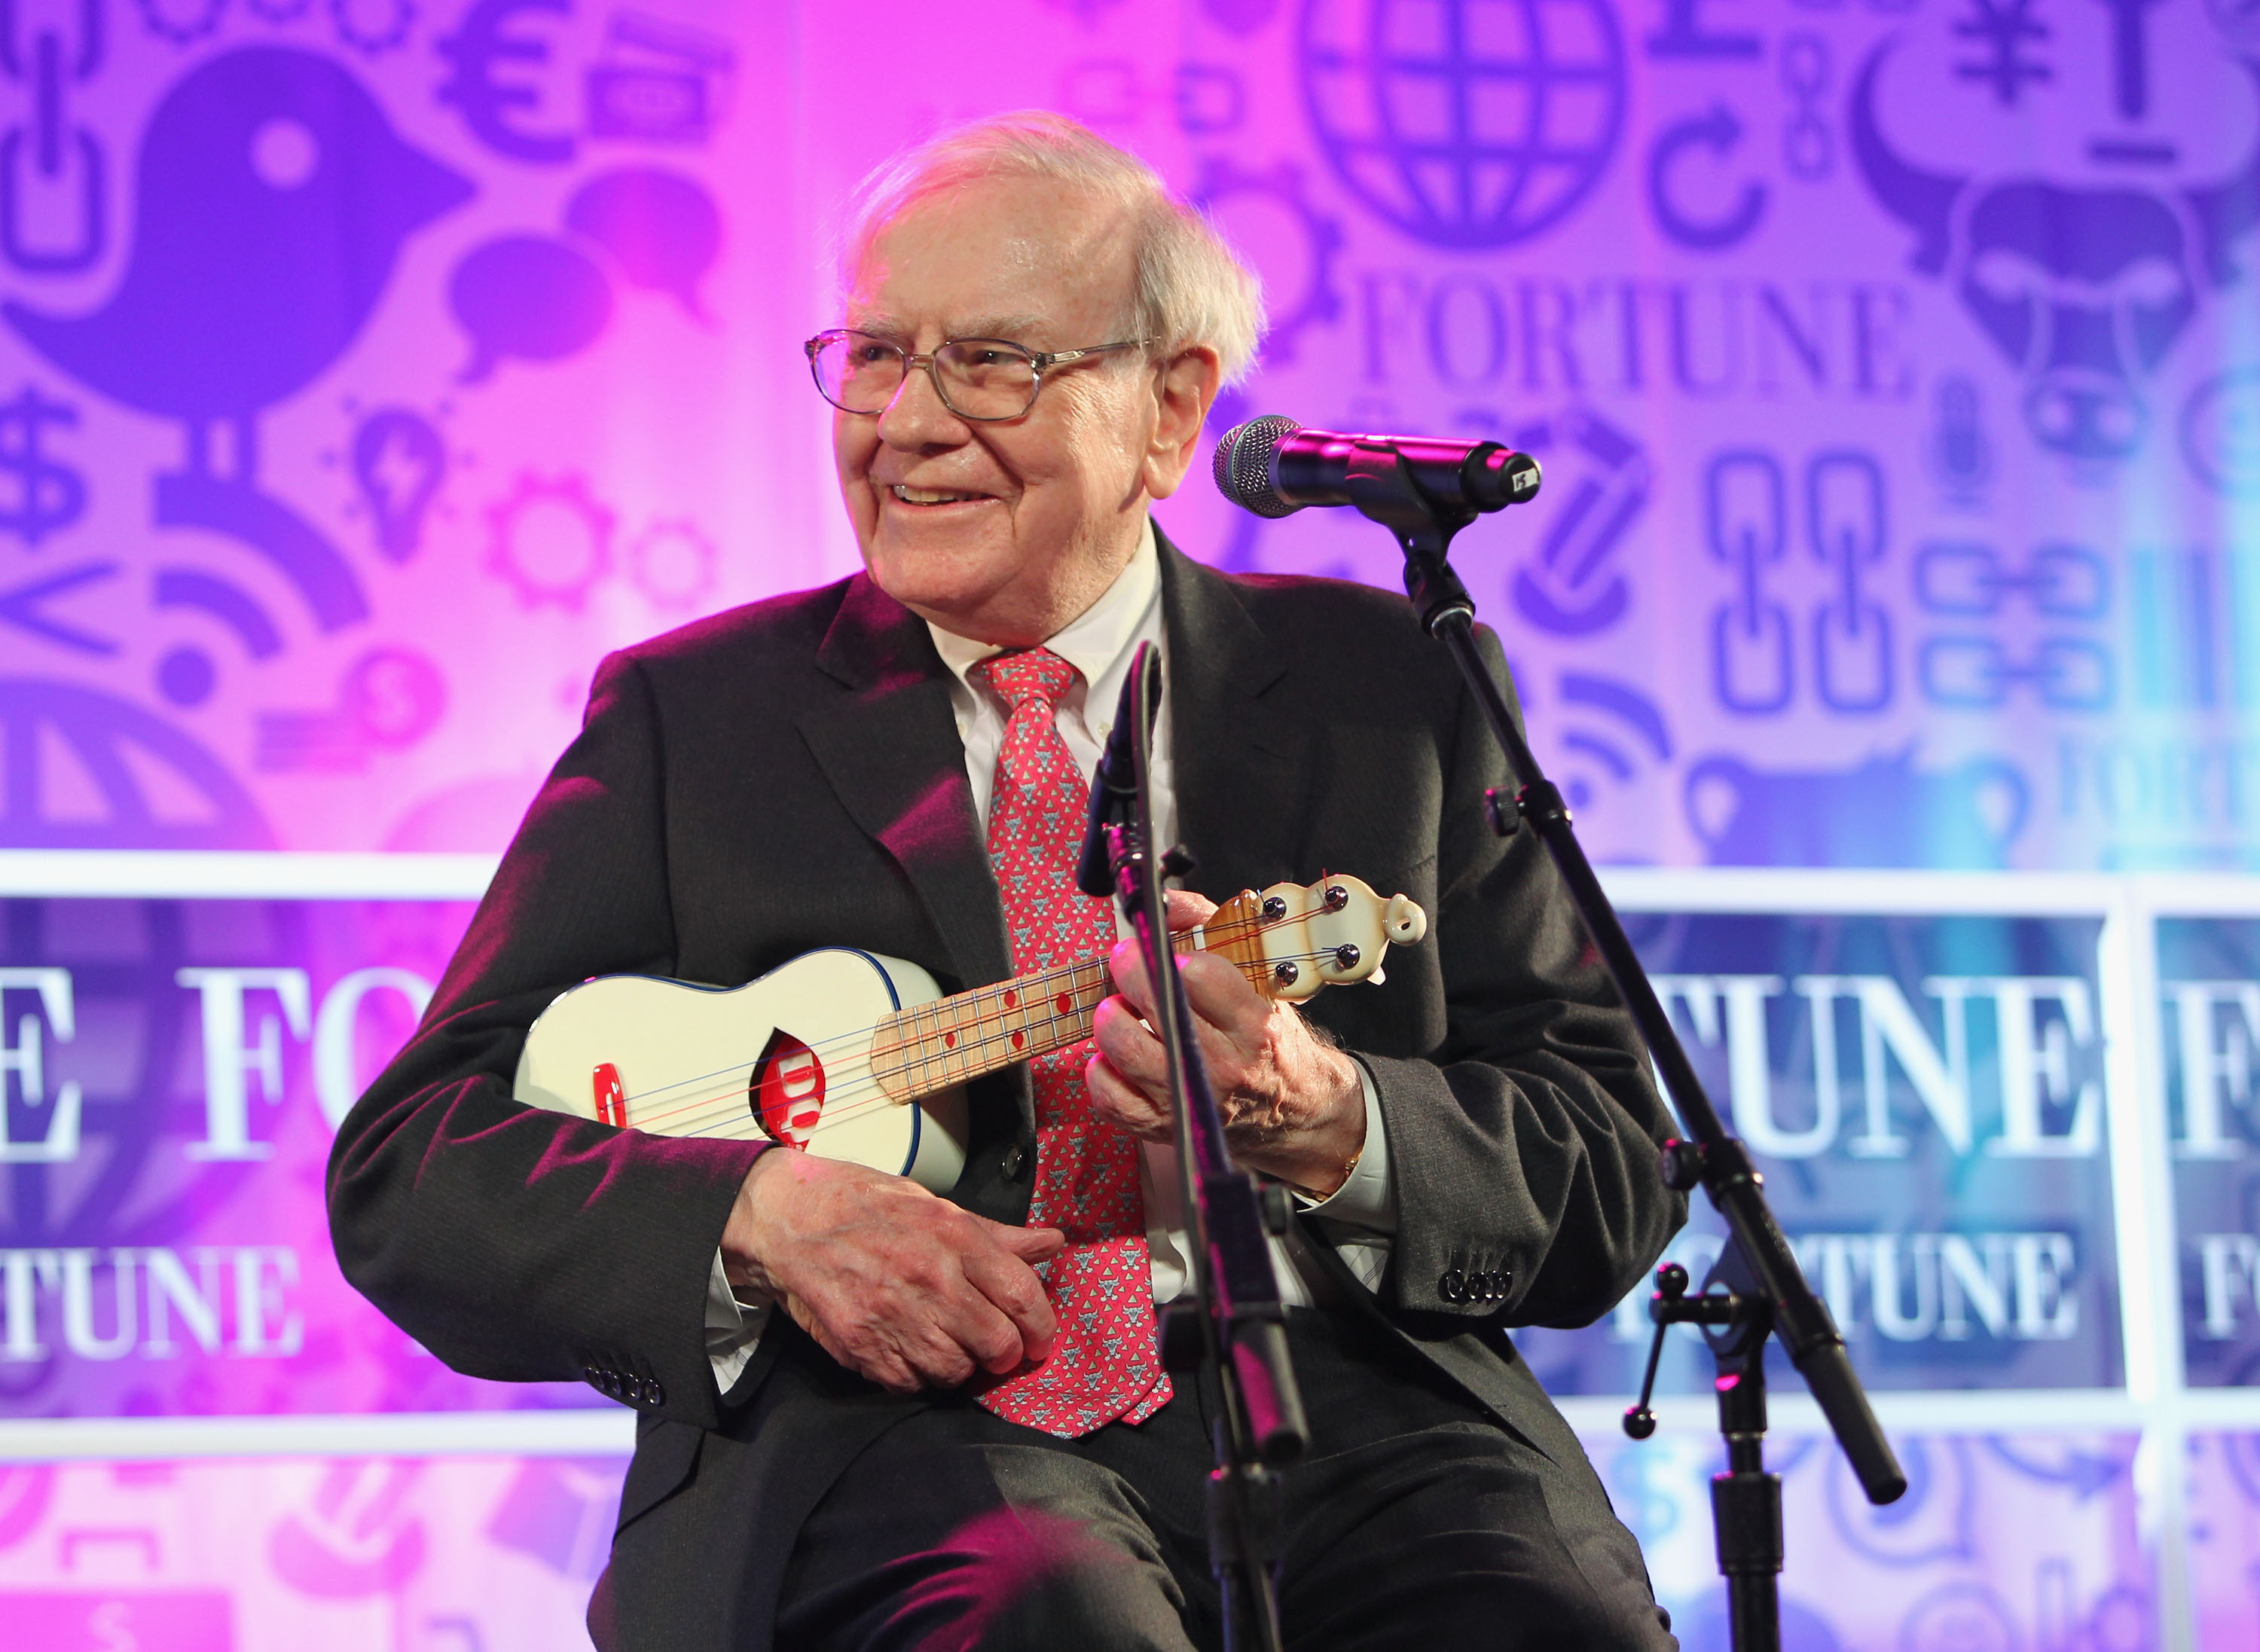 Buffett Becomes Apple's 56th Largest Shareholder With $1 Billion Investment